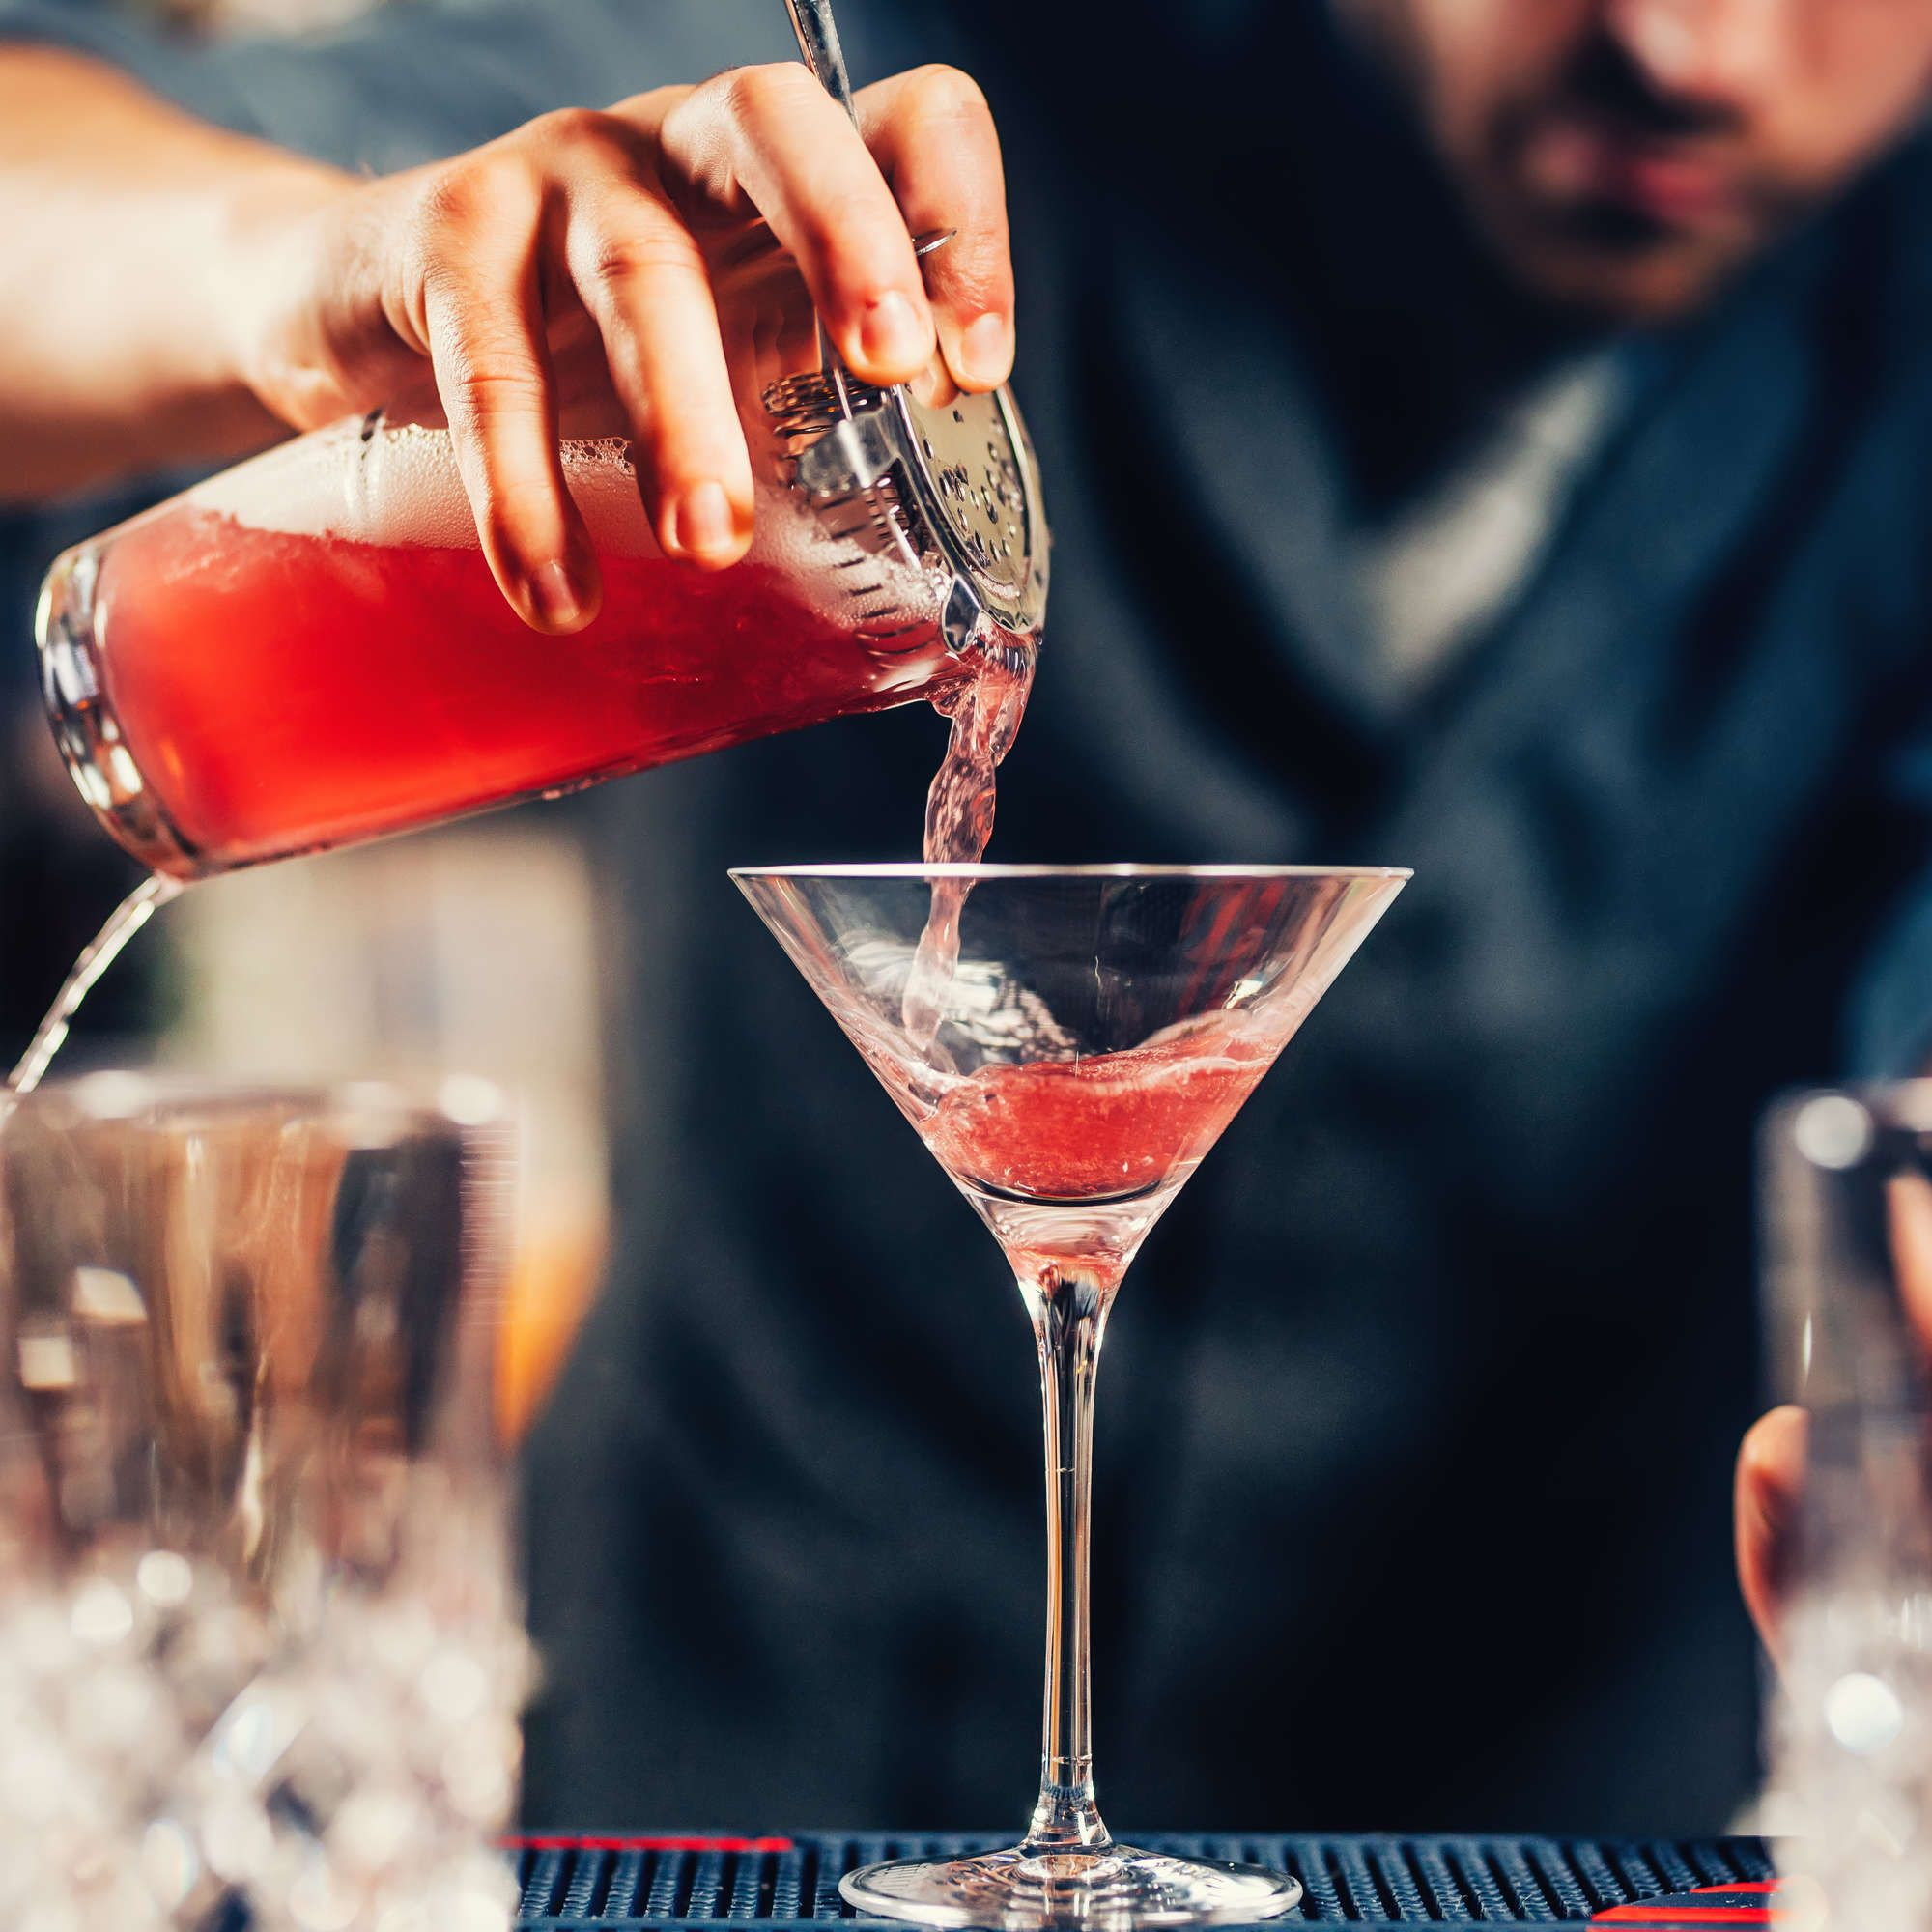 The Two Ingredient Cocktail That Will Change Your Life Flavored Vodka Easy Drink Recipes Potato Vodka Brands